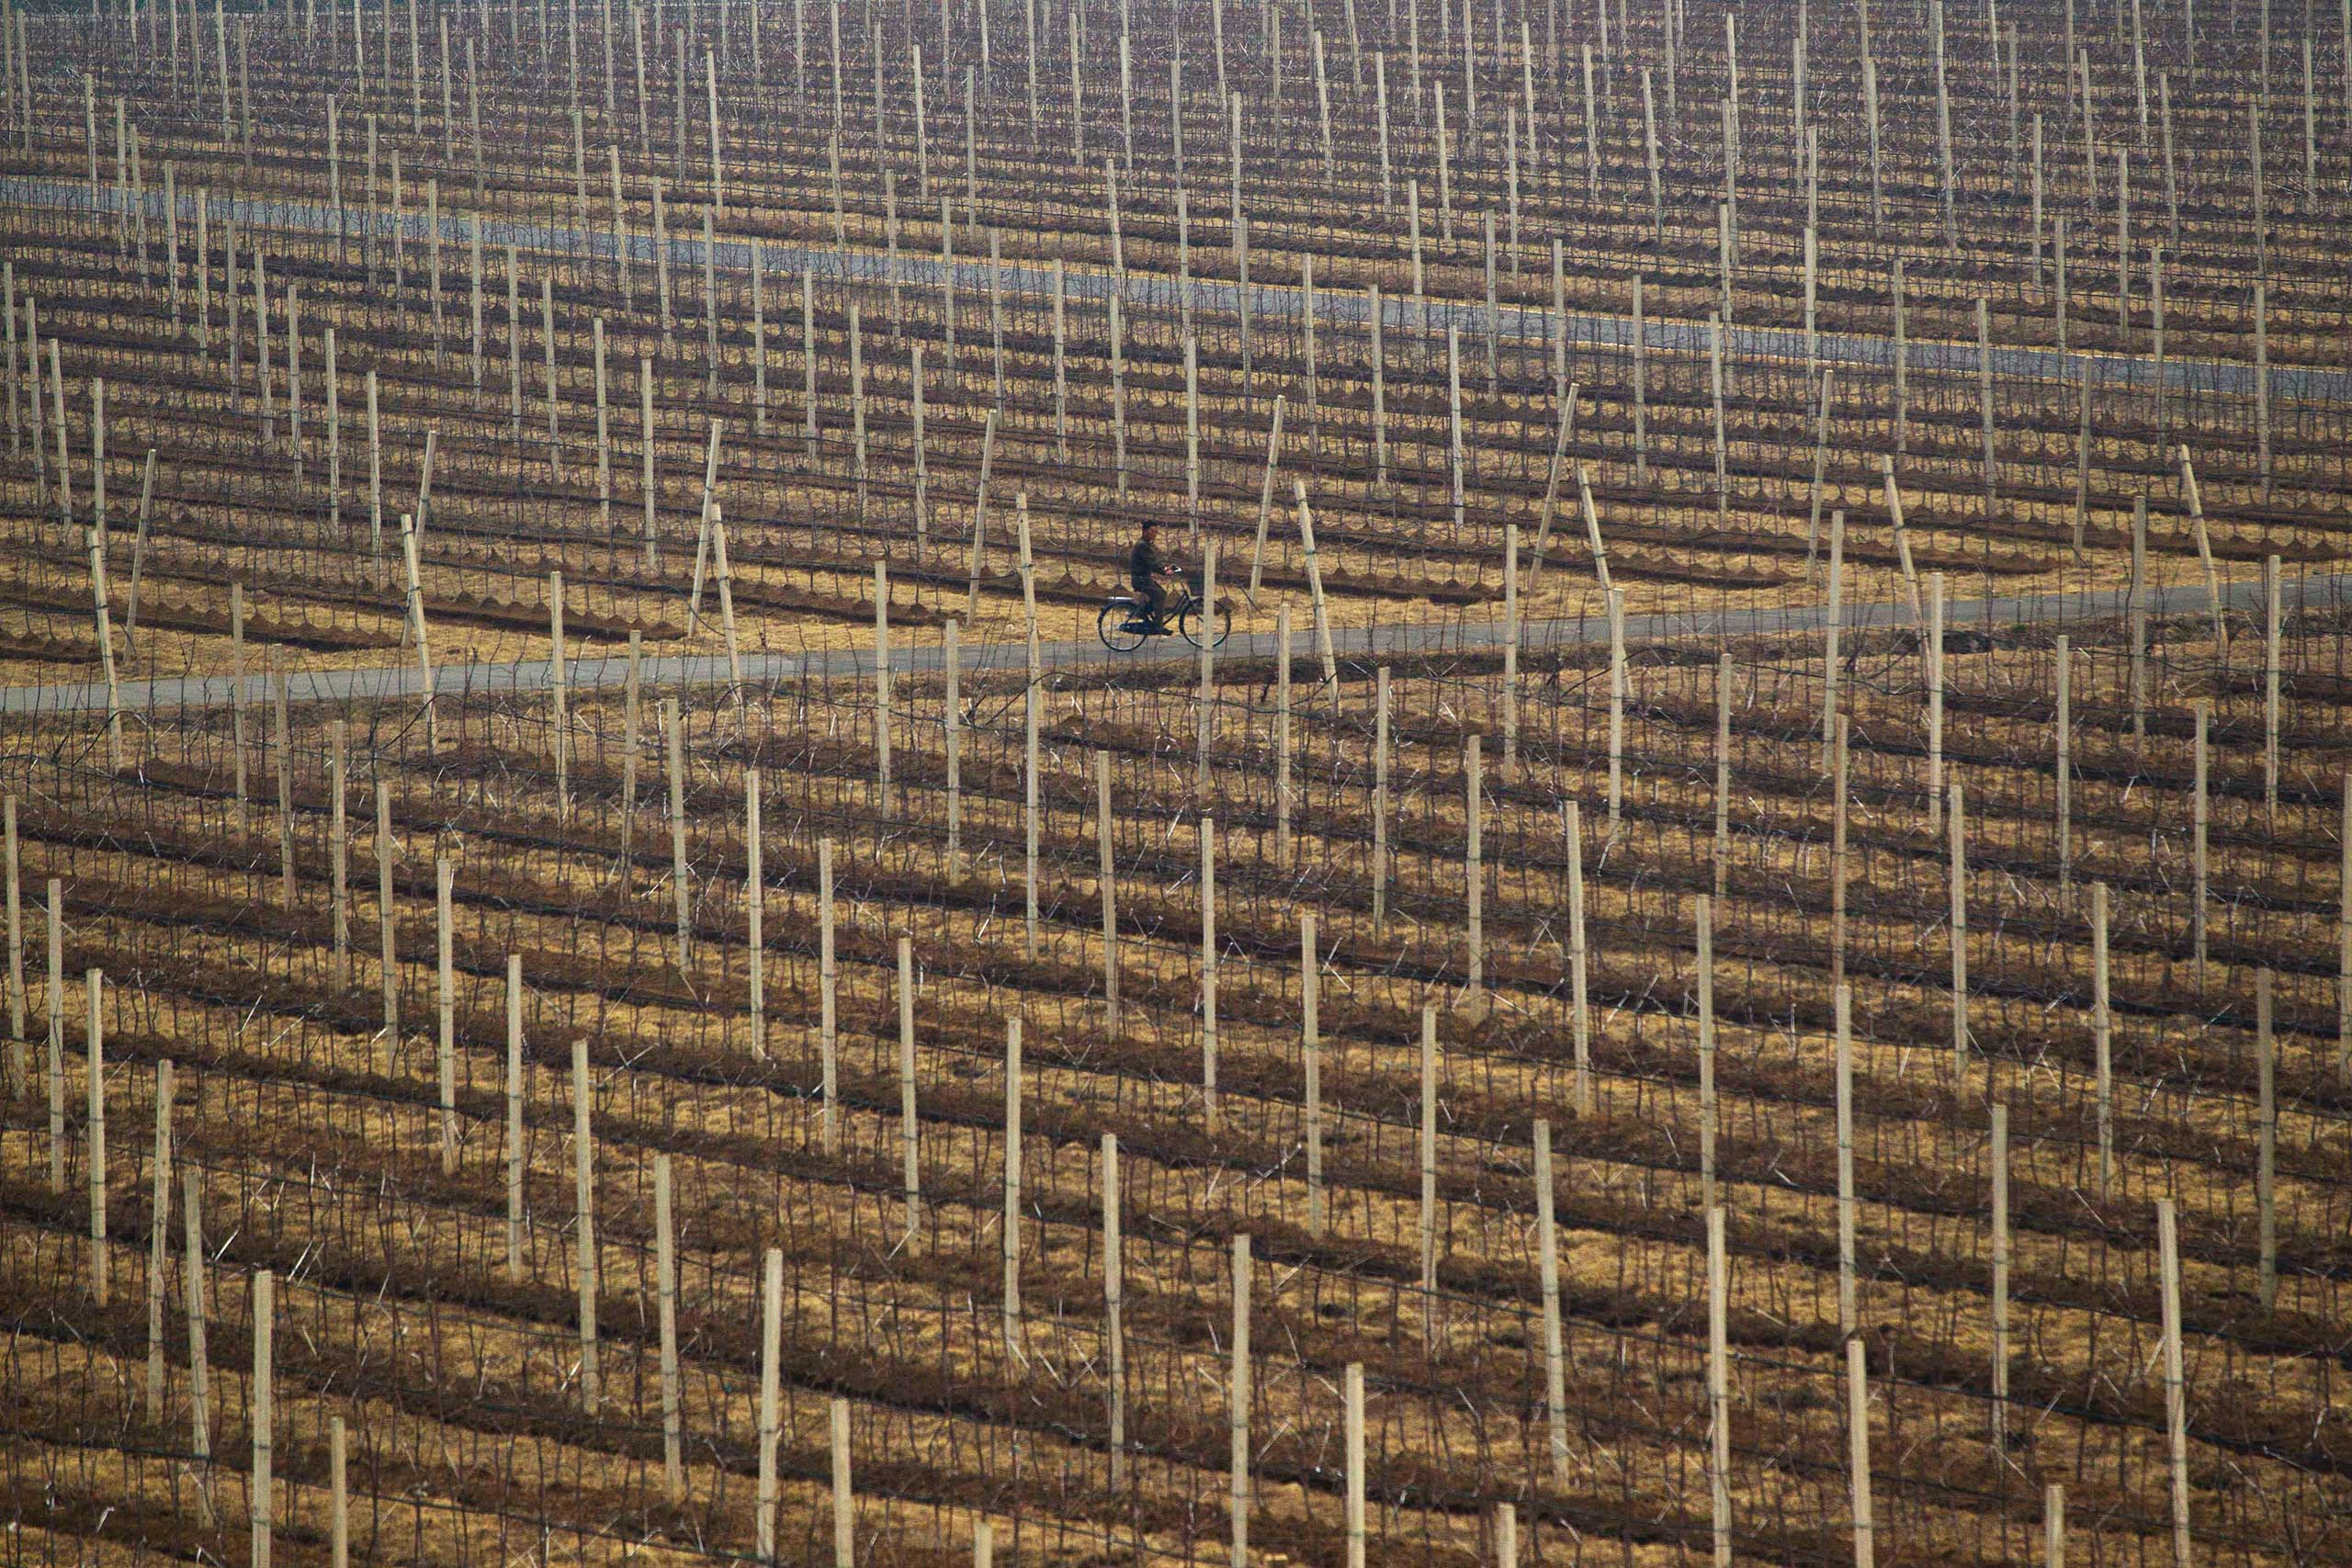 April 10, 2012. A North Korean man rides a bicycle on the grounds of a communal apple farm on the outskirts of Pyongyang.